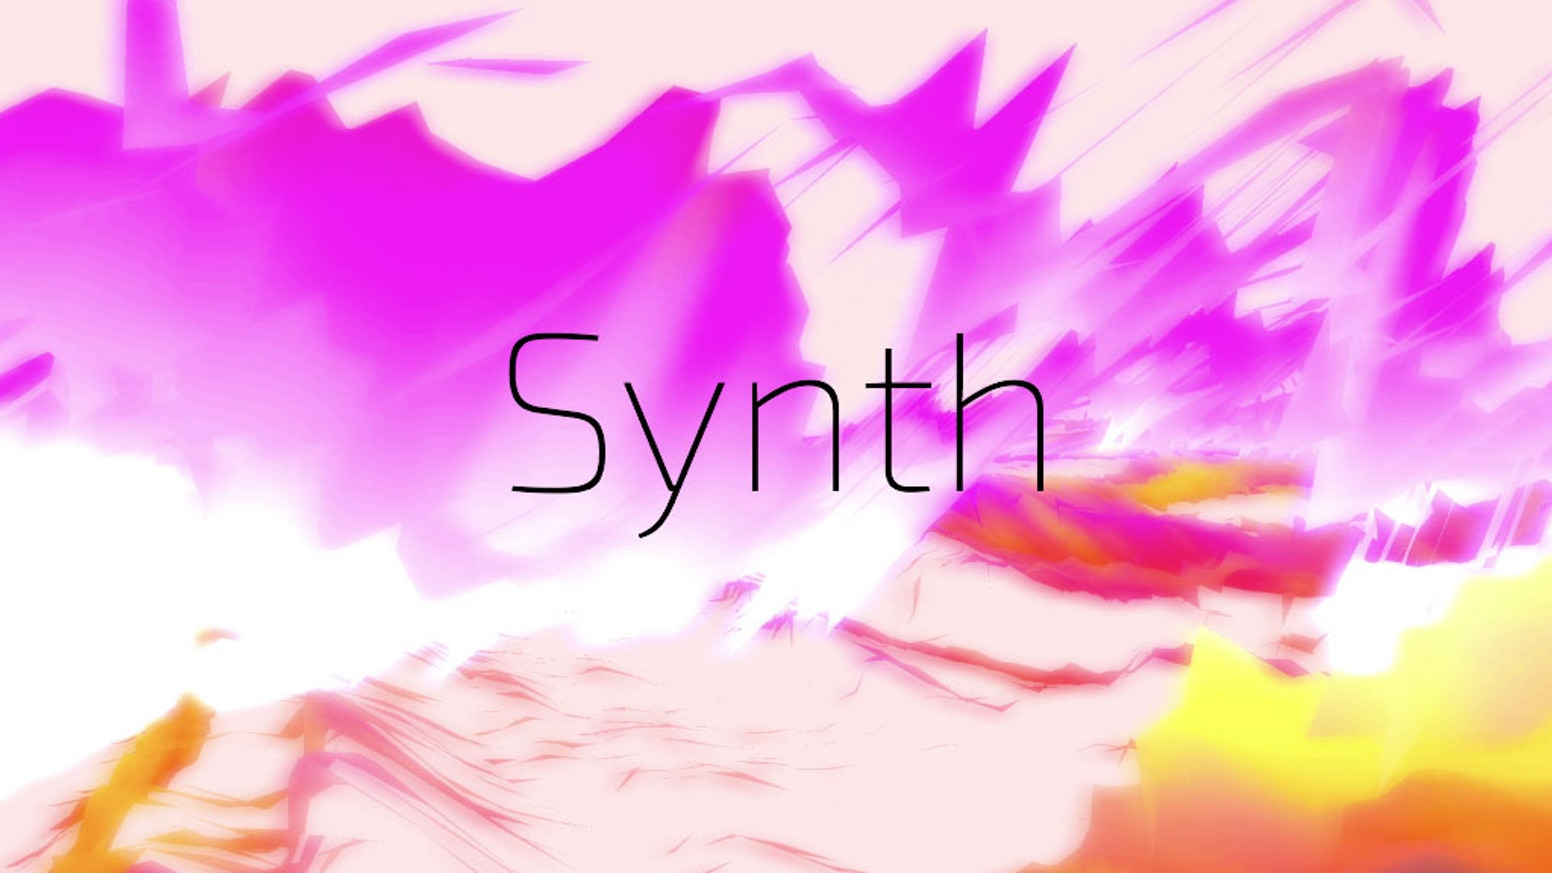 Synth is a video synthesizer for the web by Stephen